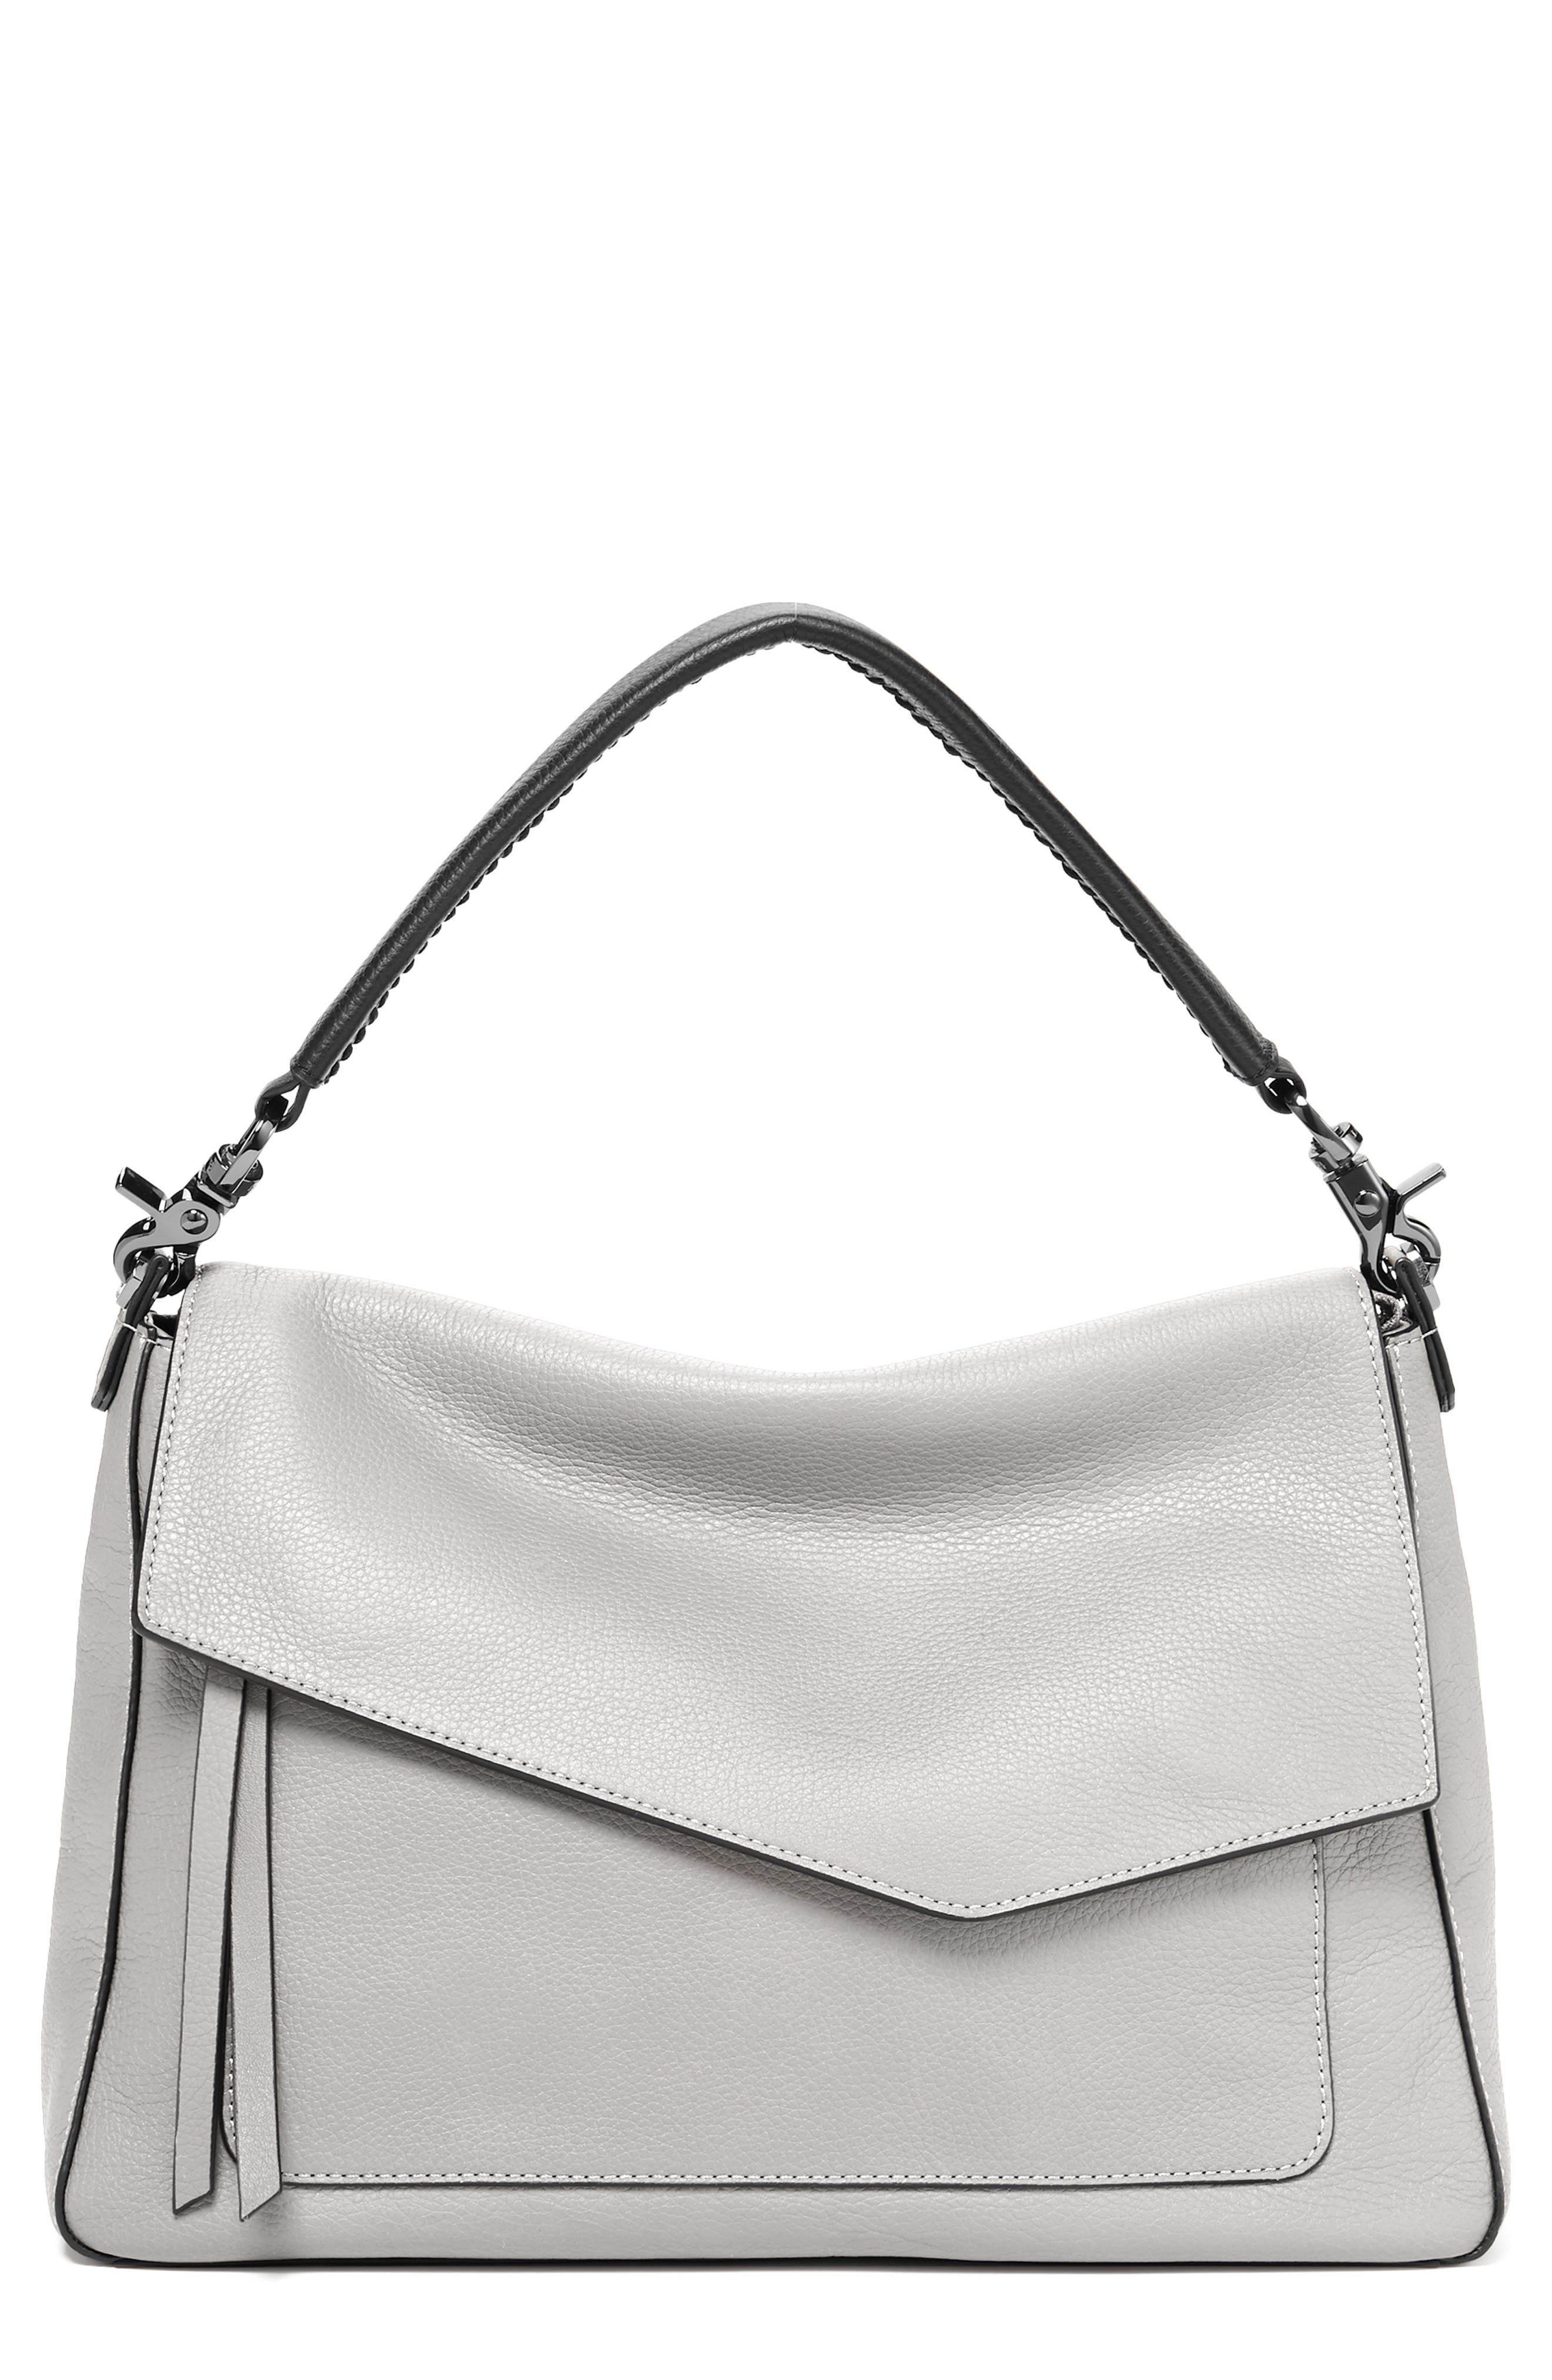 Cobble Hill Slouch Calfskin Leather Hobo - Grey in Silver Grey